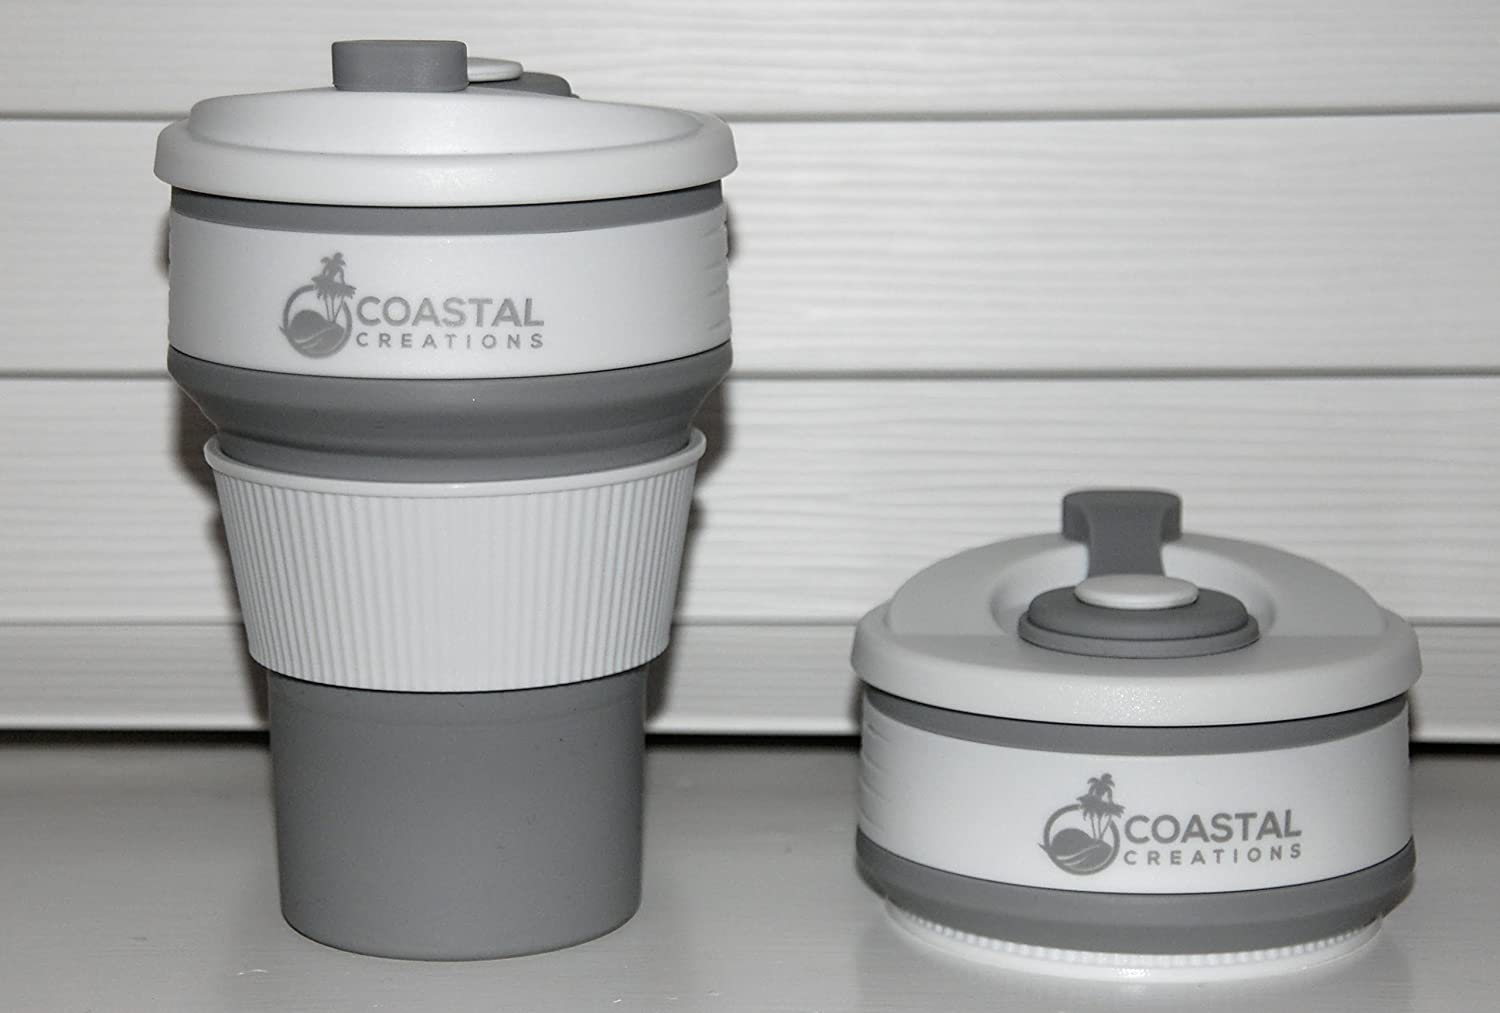 Collapsible Coffee Cup - Reusable & Portable, It's Folding Design Makes It The Perfect Travel Mug - Made From Food Grade BPA Free Silicone - Its Leak Proof Design Is Great For Use In The Office, Outside Or At Home - The Ultimate Gift For Coffee Lovers